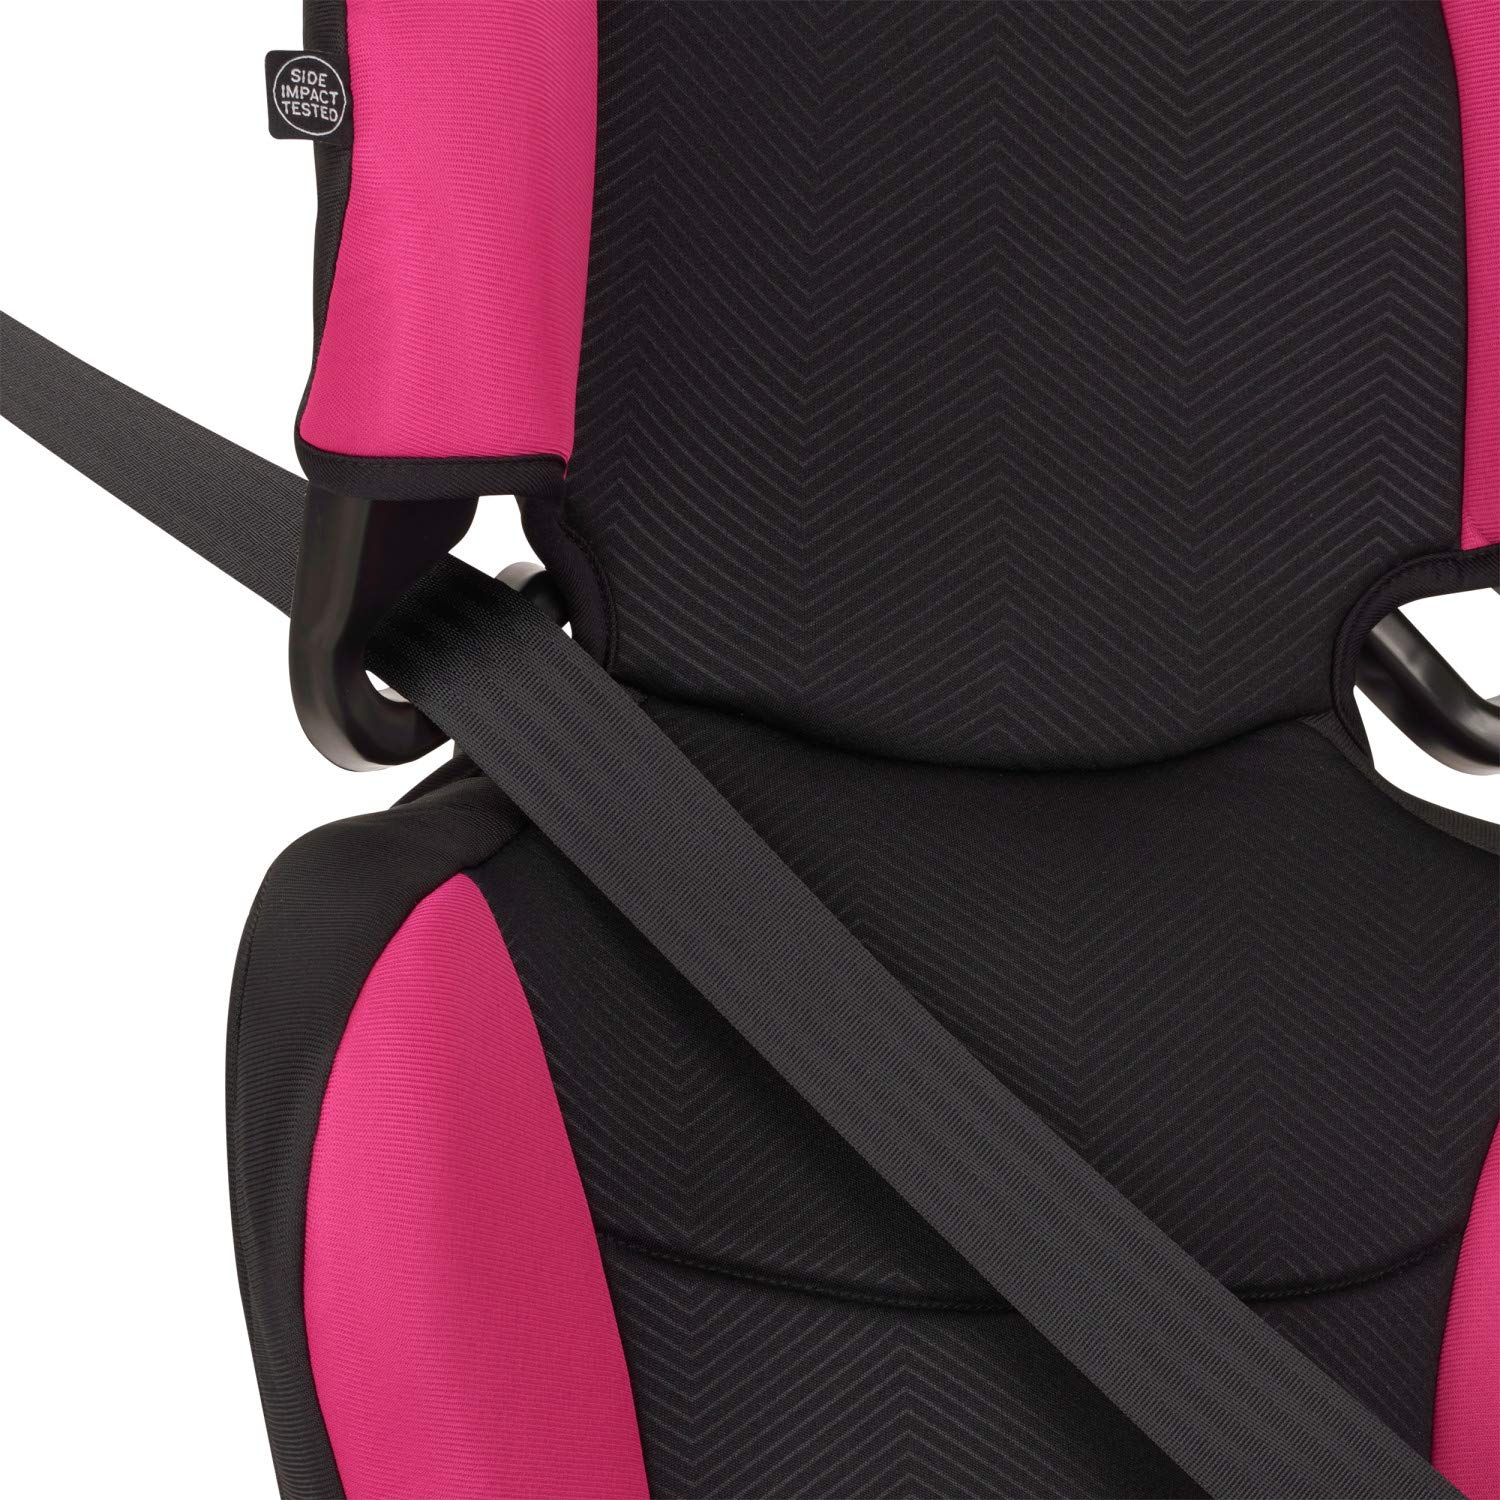 Sequioa Evenflo Big Kid Sport High Back Booster Car Seat